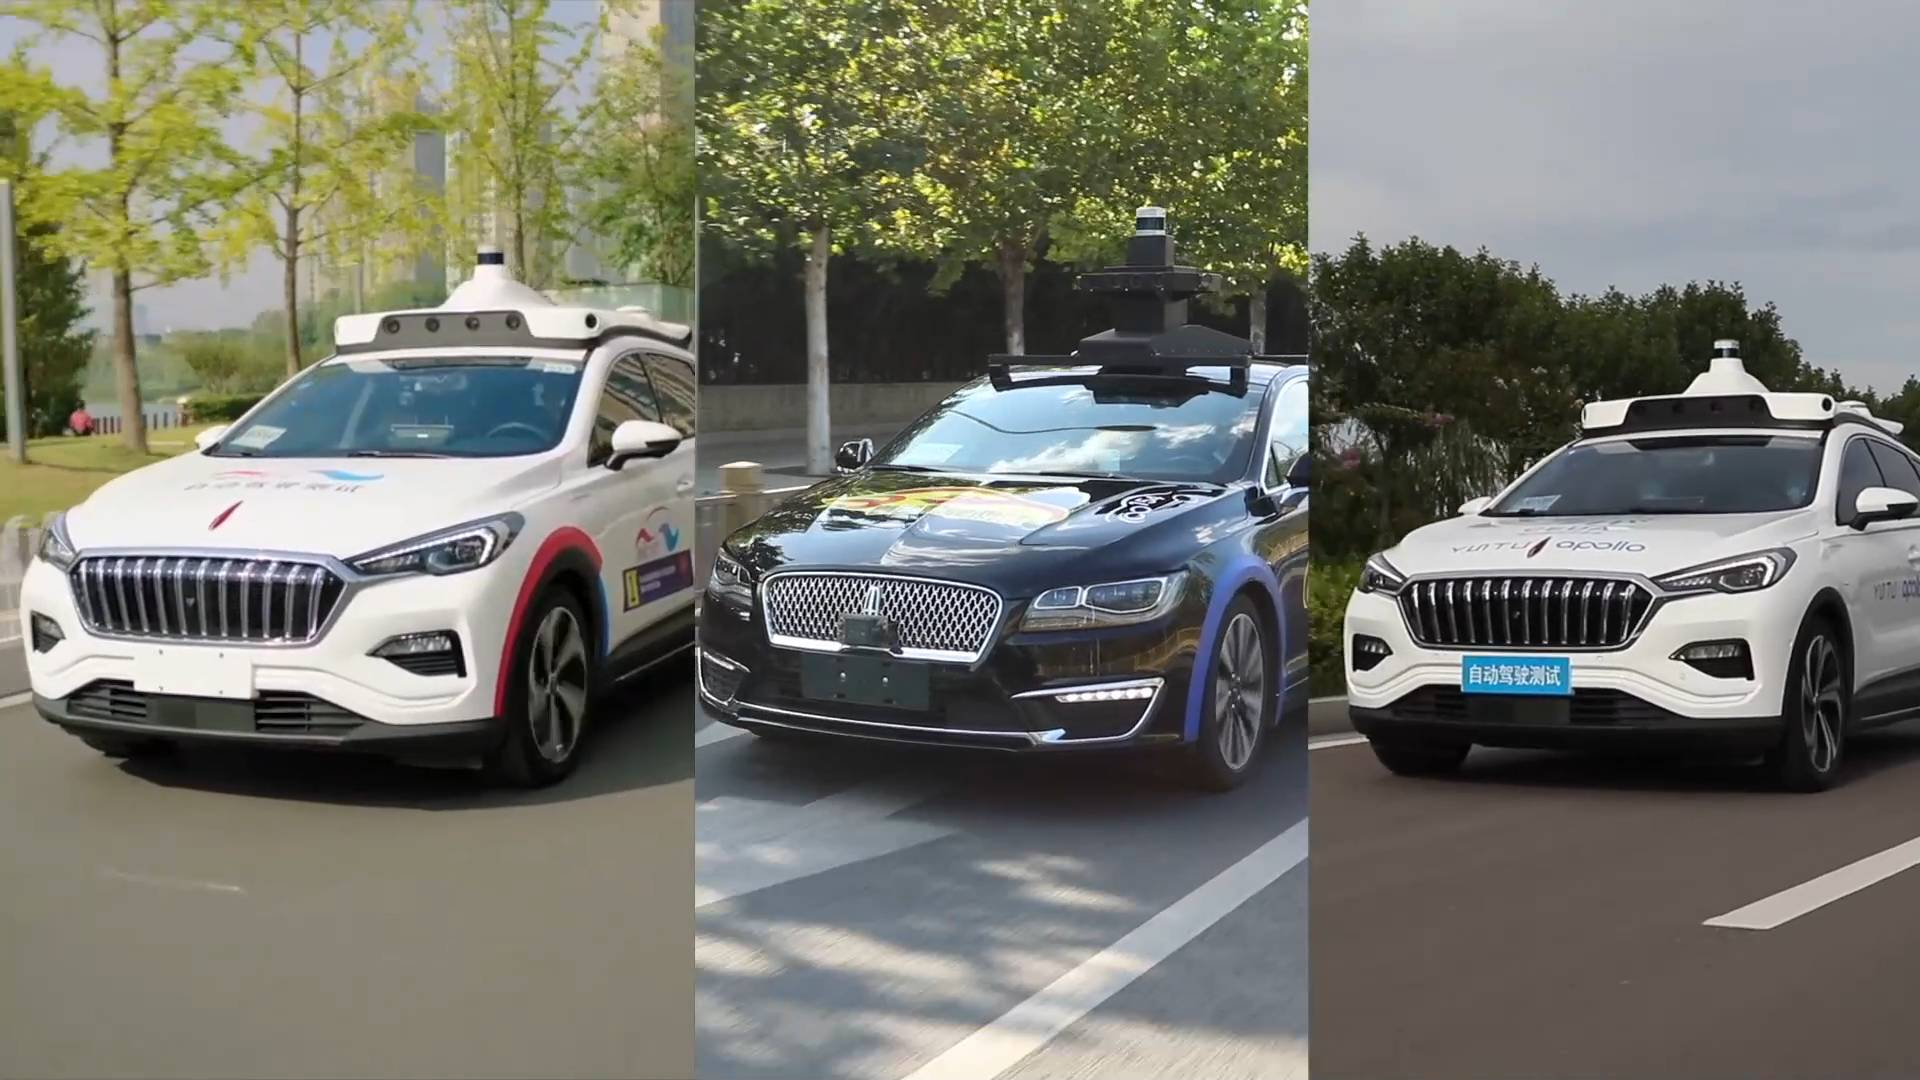 Baidu offers free trials of self-driving taxi service in Beijing